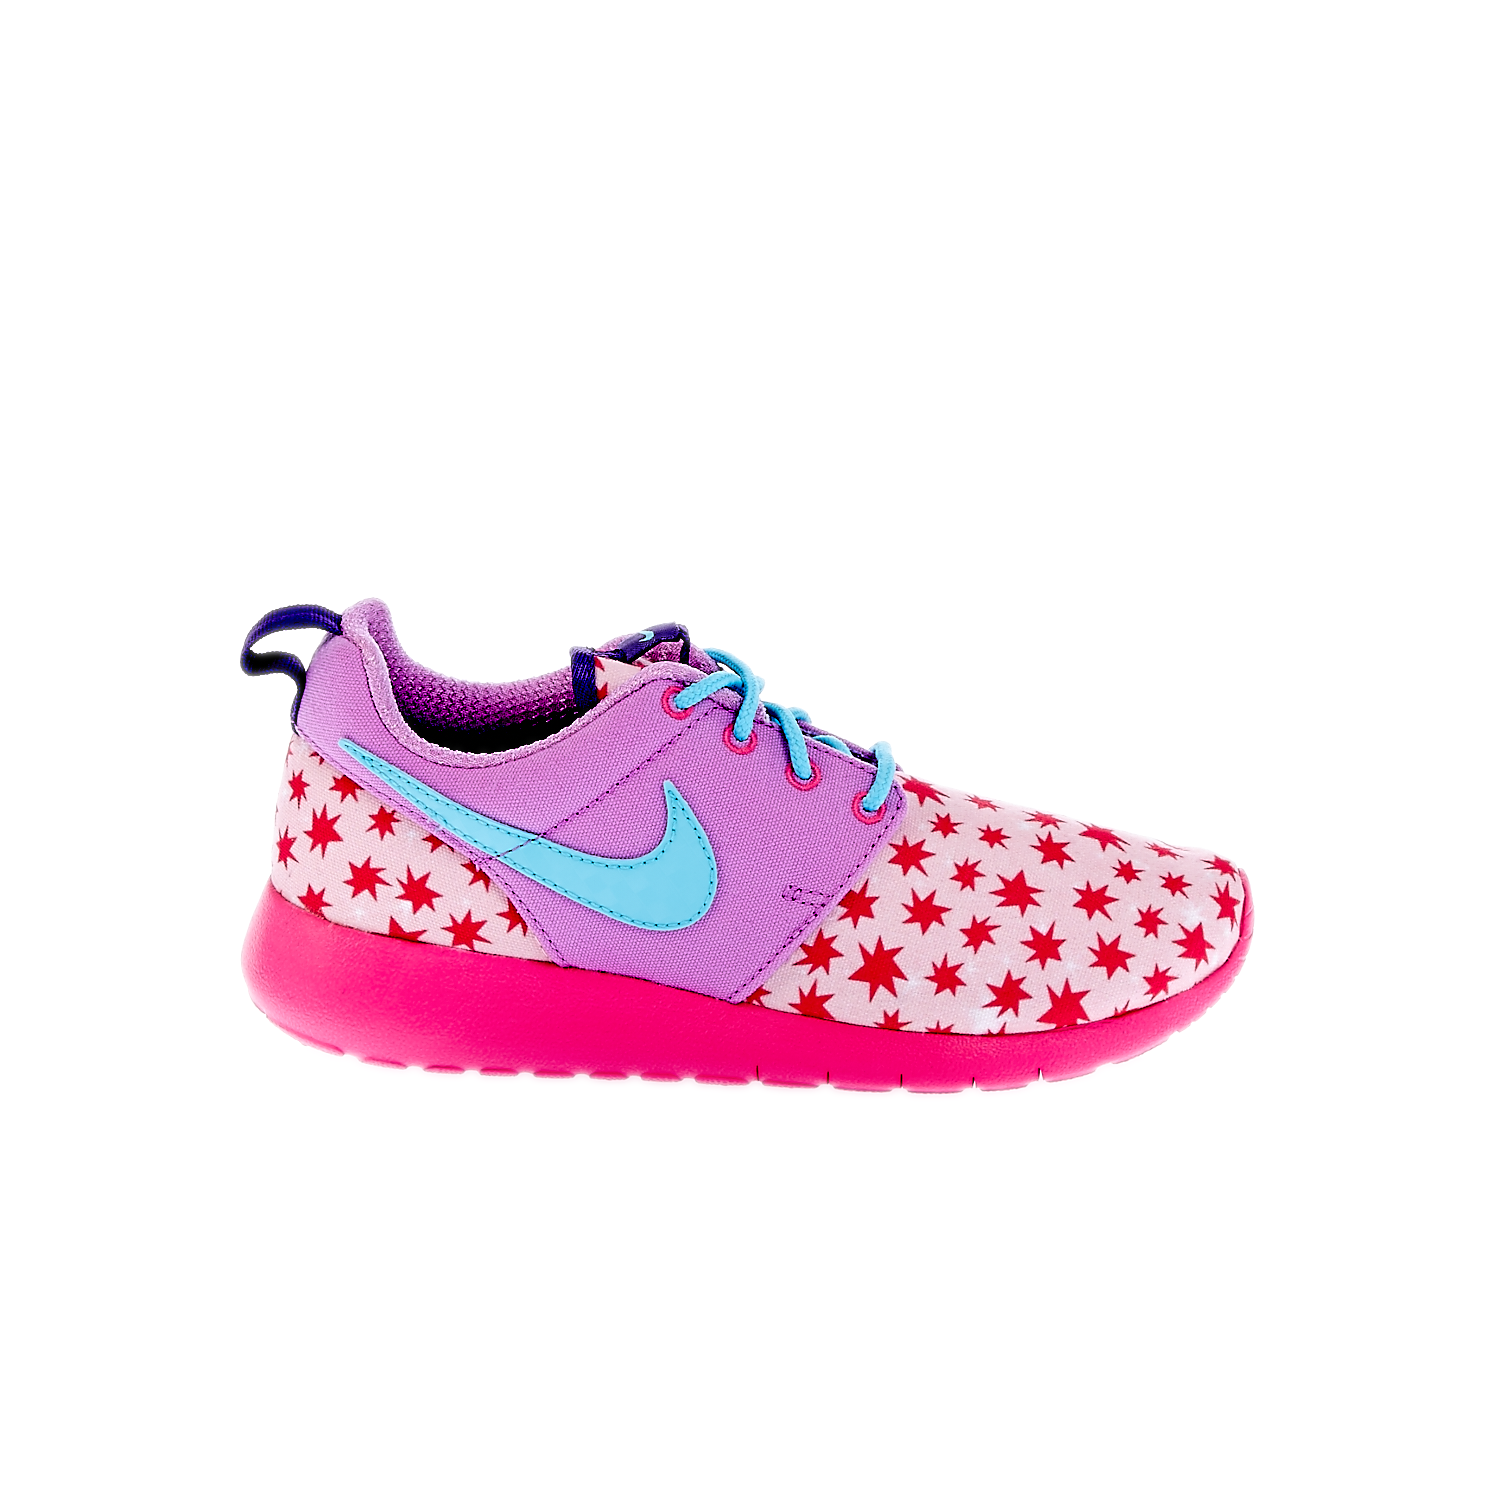 2c679ef49e7 -31% Factory Outlet NIKE – Παιδικά παπούτσια NIKE ROSHE ONE PRINT (GS)  φούξια